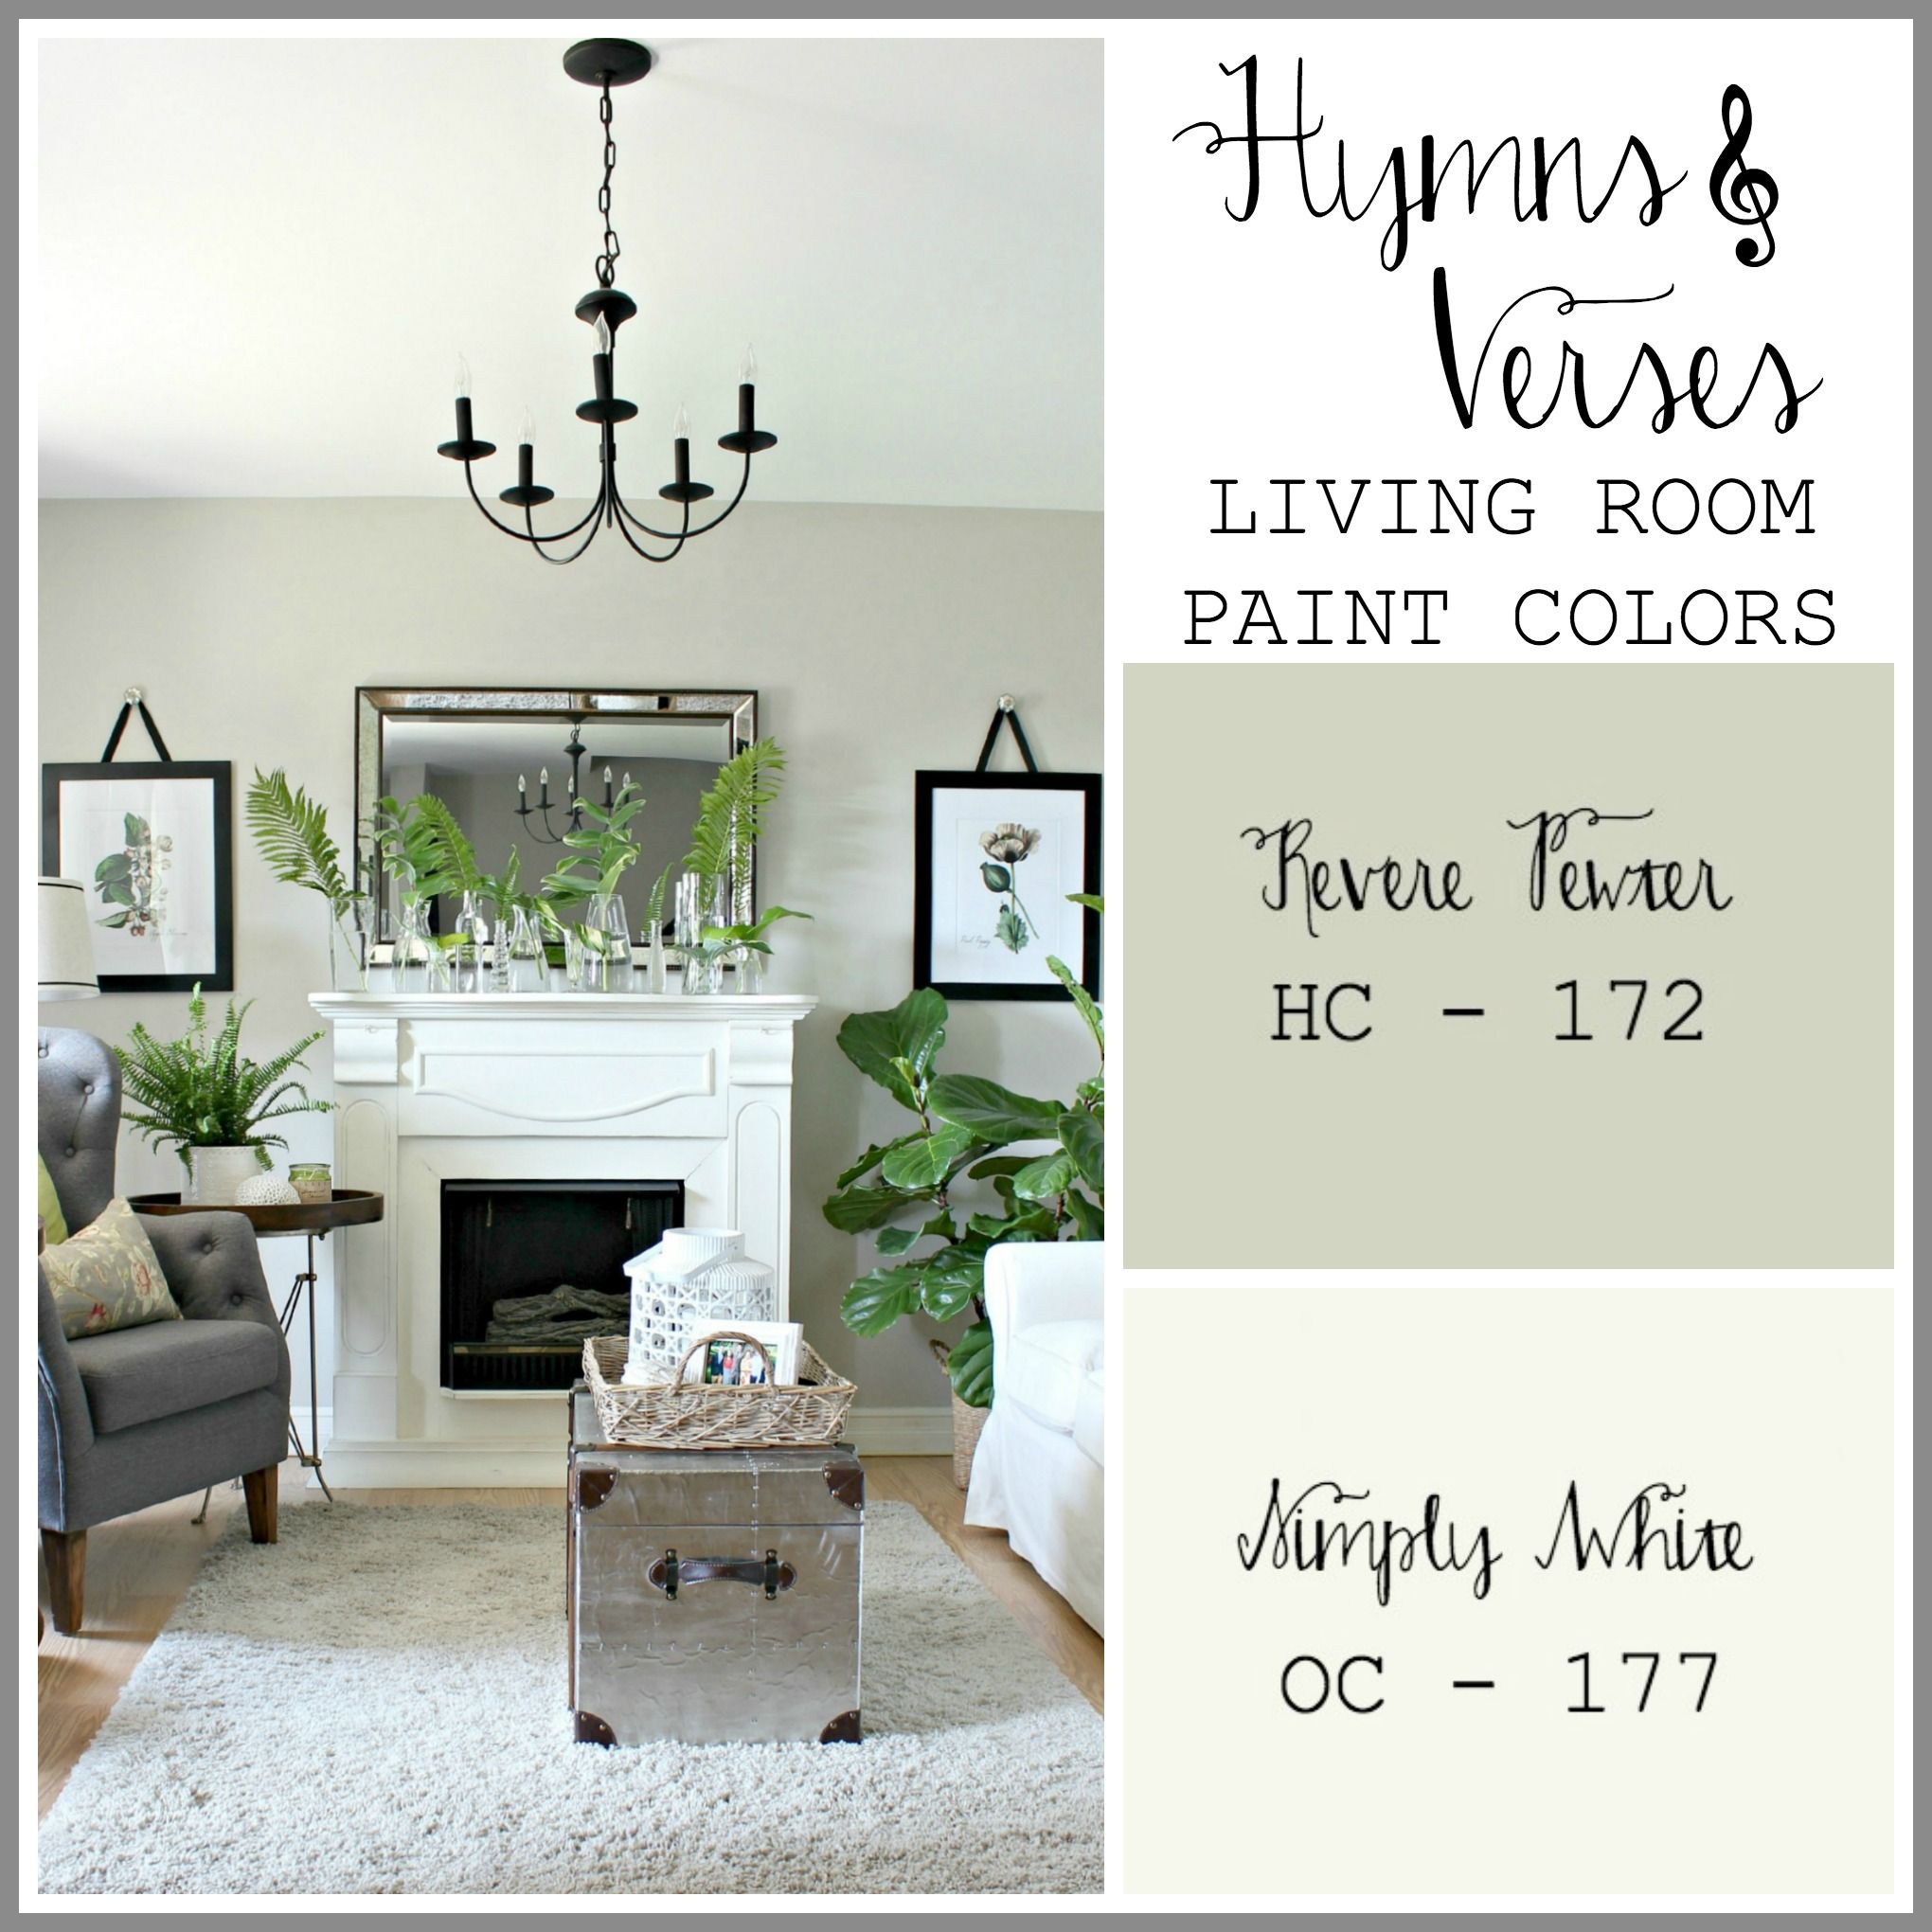 Home interior paint colors living room paint colors   paint colors in my home  hymns and